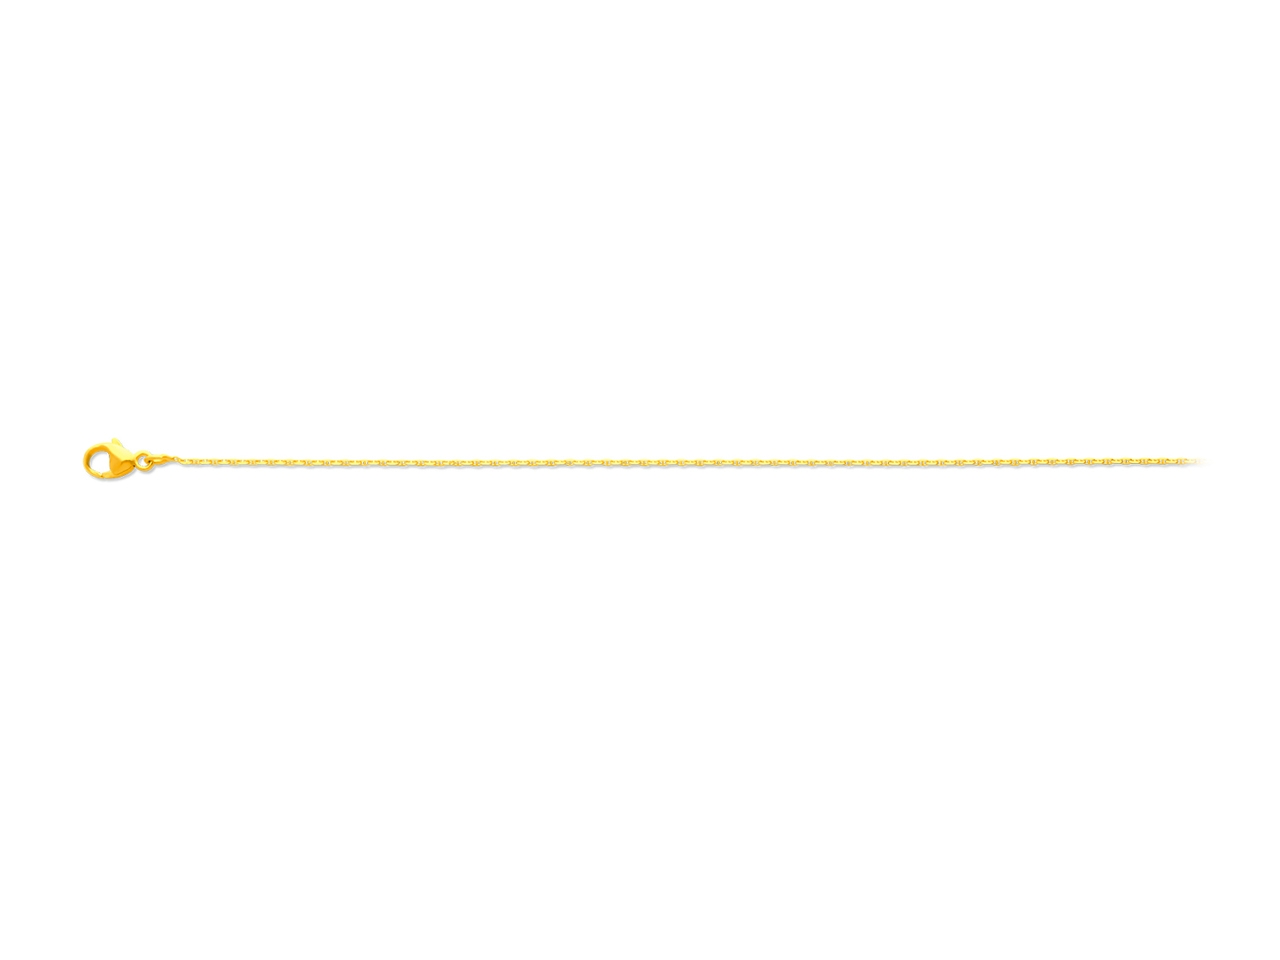 Collier maille forçat marine diamantée, Or jaune 18k, 1,1 mm, 45 cm